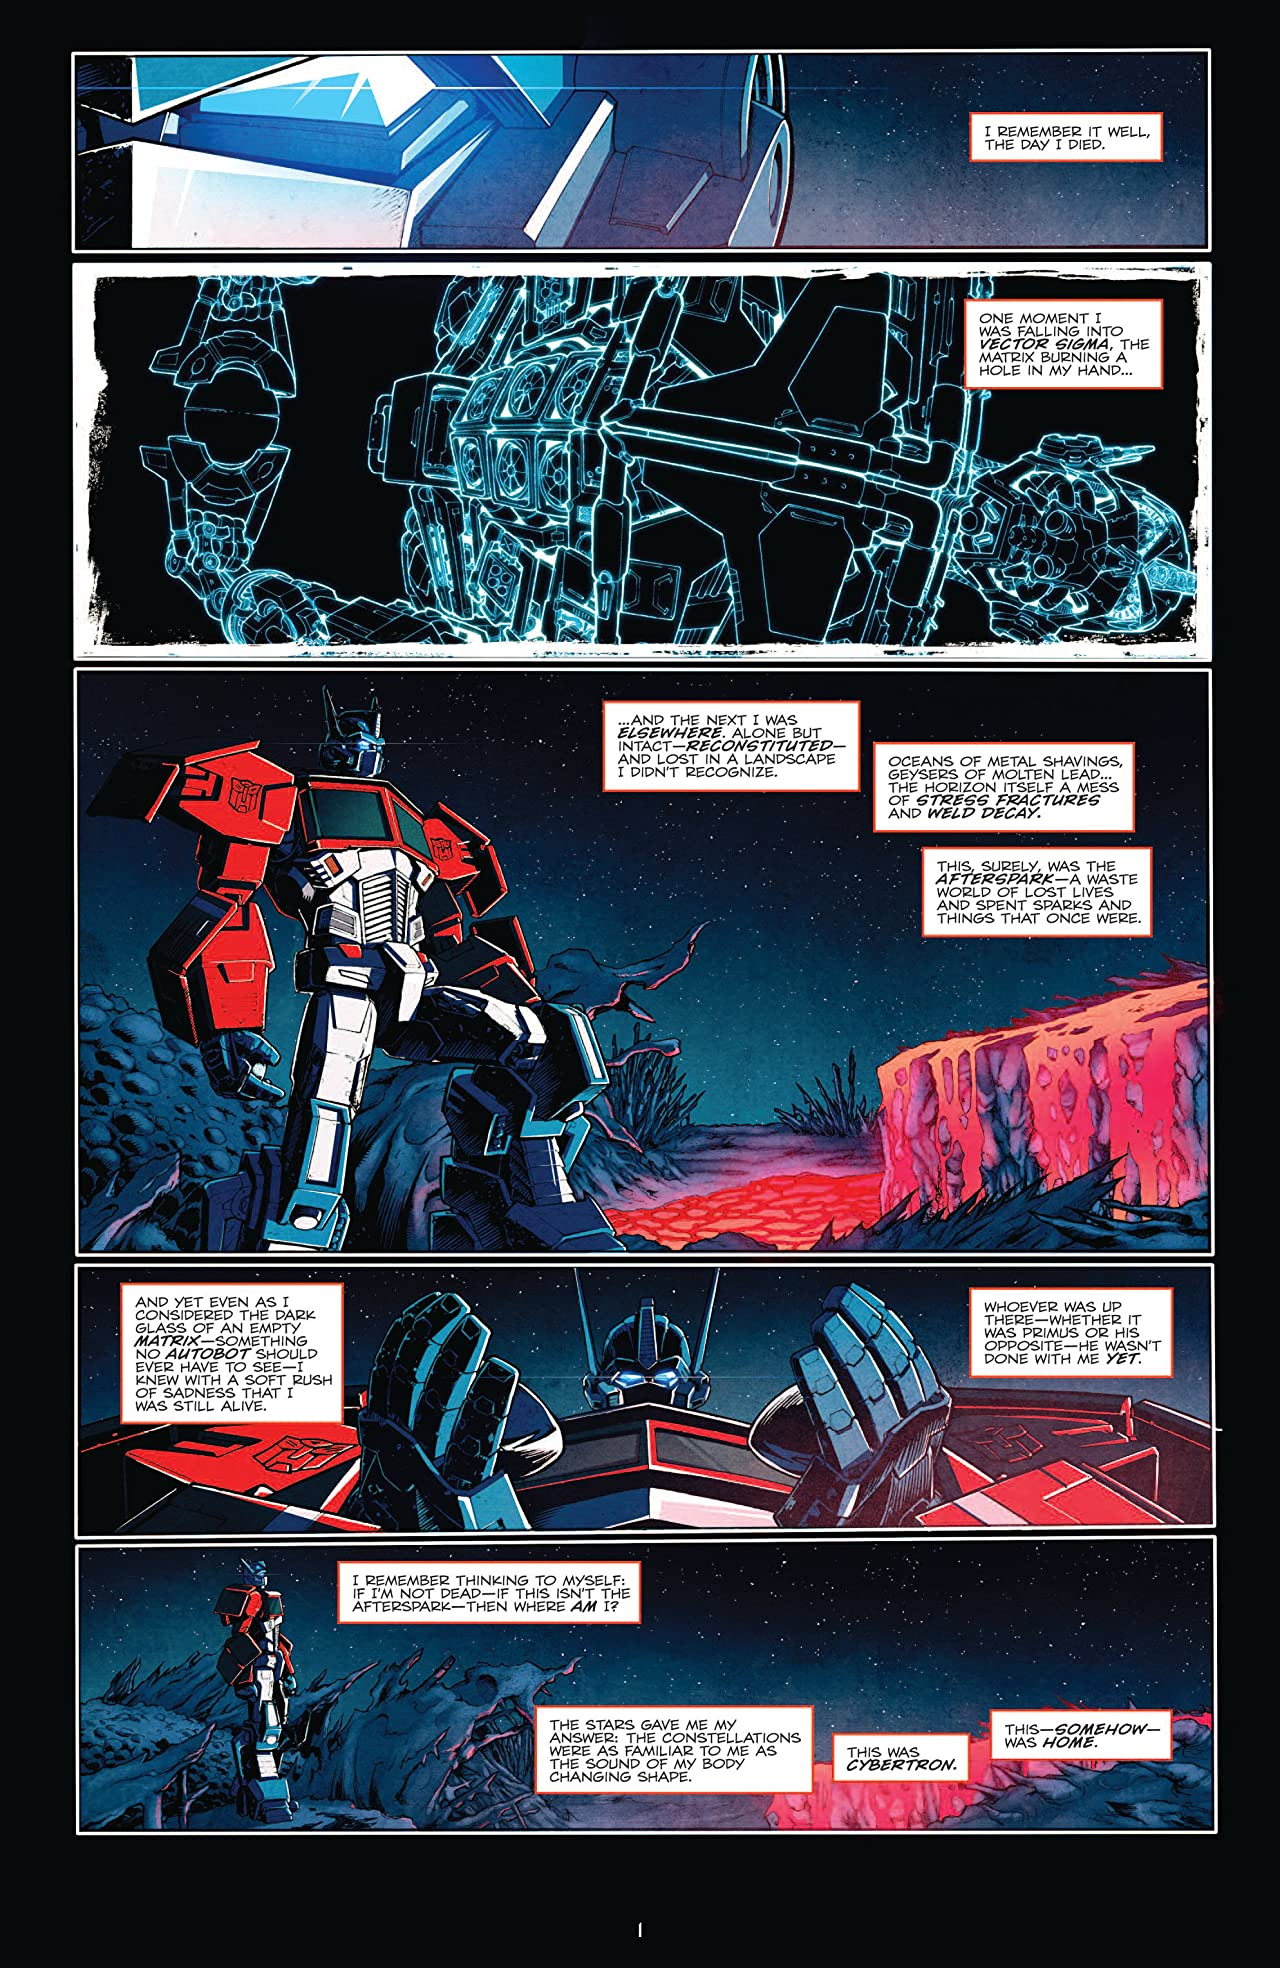 Transformers: Death of Optimus Prime